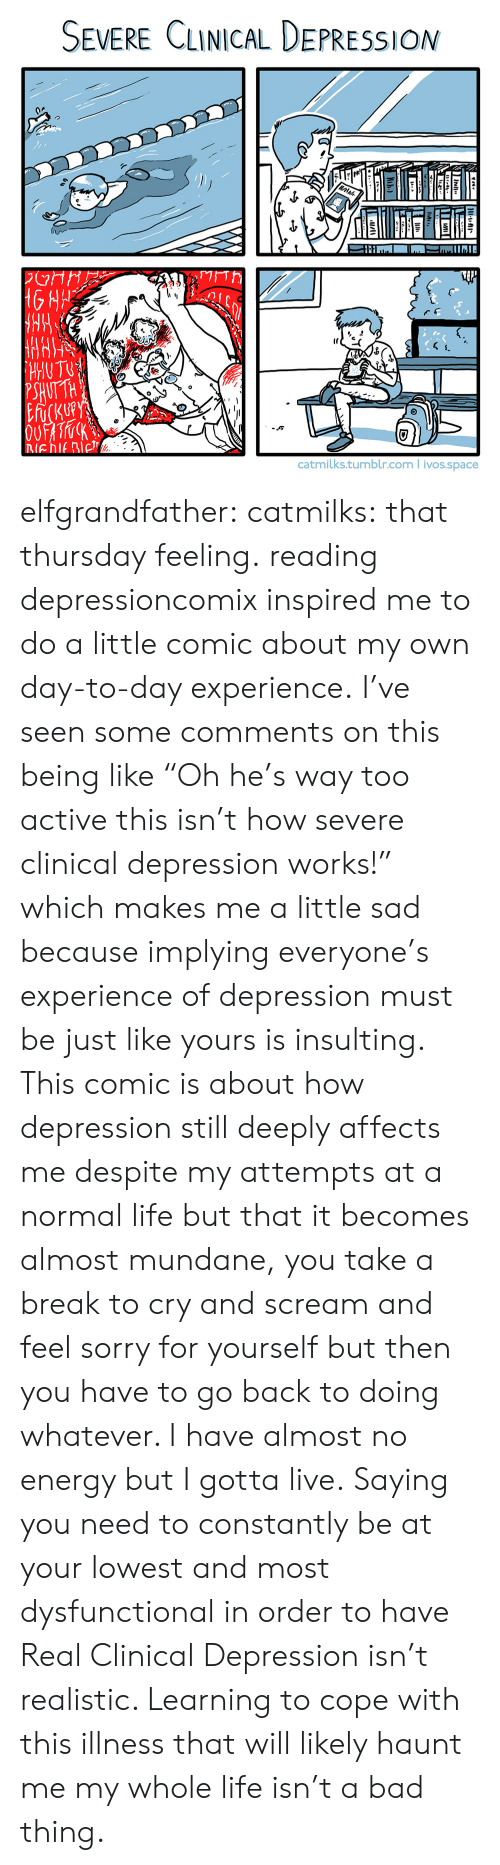 """Bad, Energy, and Life: SEVERE CLINICAL DEPRESSION  1)  HUTTH  catmilks.tumblr.com ivos.space elfgrandfather: catmilks:   that thursday feeling. reading depressioncomixinspired me to do a little comic about my own day-to-day experience.   I've seen some comments on this being like """"Oh he's way too active this isn't how severe clinical depression works!"""" which makes me a little sad because implying everyone's experience of depression must be just like yours is insulting. This comic is about how depression still deeply affects me despite my attempts at a normal life but that it becomes almost mundane, you take a break to cry and scream and feel sorry for yourself but then you have to go back to doing whatever. I have almost no energy but I gotta live. Saying you need to constantly be at your lowest and most dysfunctional in order to have Real Clinical Depression isn't realistic. Learning to cope with this illness that will likely haunt me my whole life isn't a bad thing."""